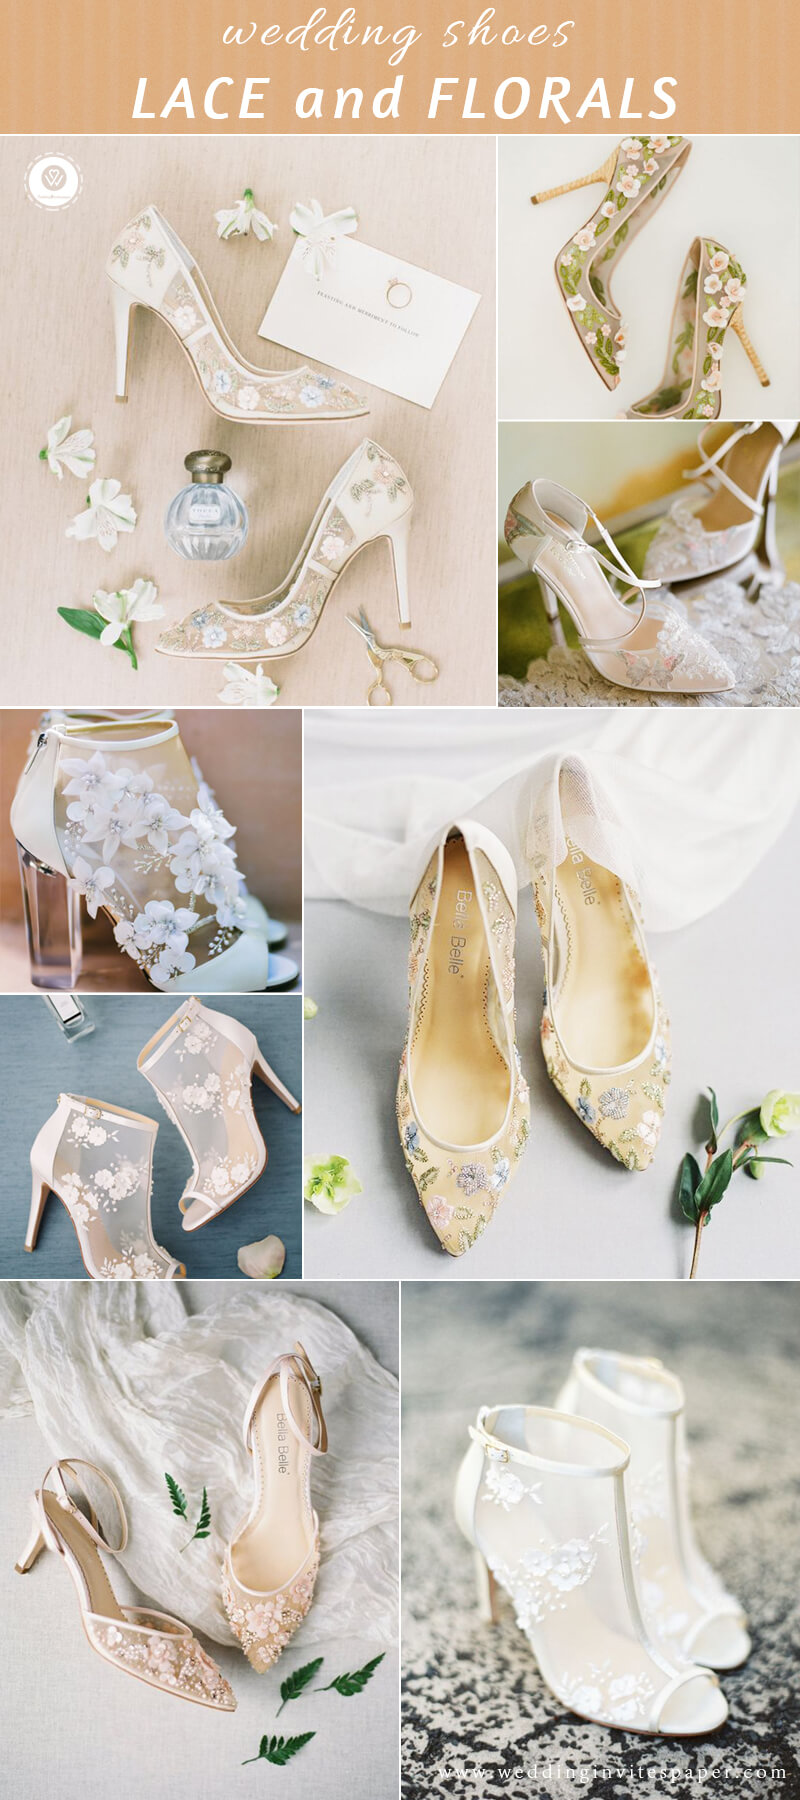 wedding shoes LACE and FLORALS.jpg